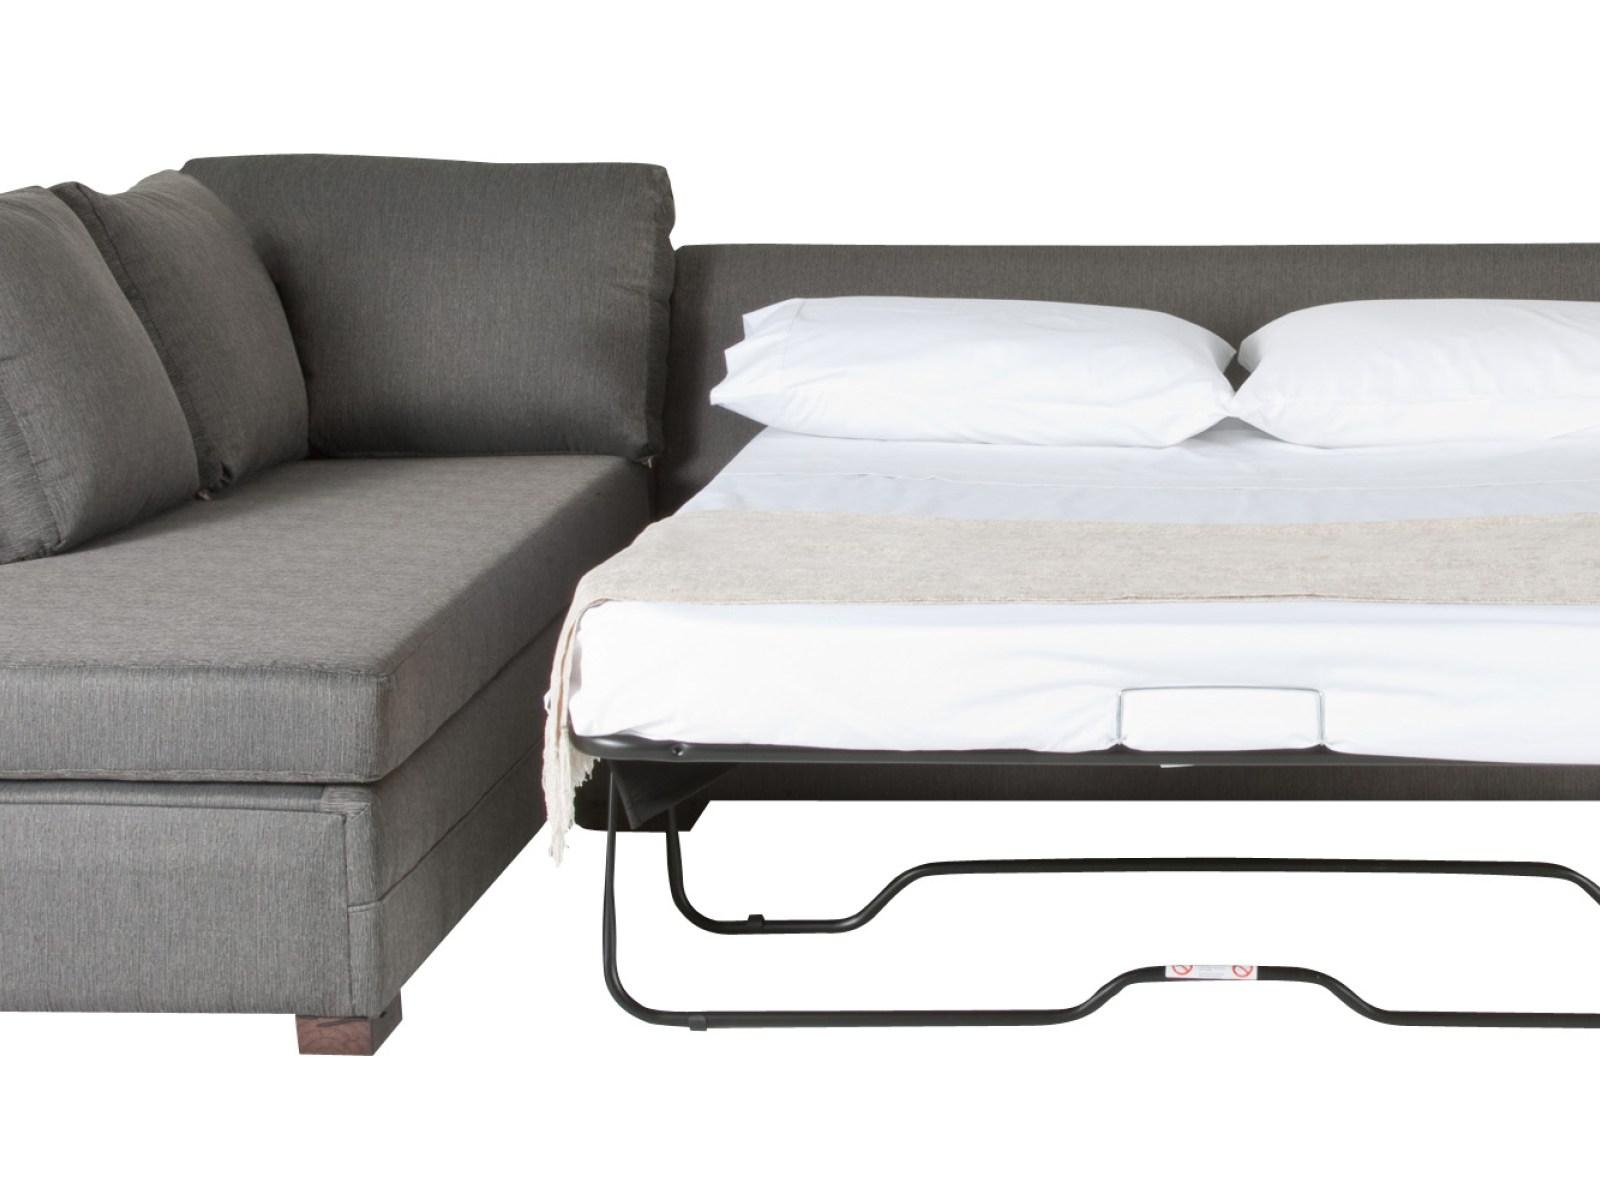 ▻ Sofa : 13 Leather Sectional Sleeper Sofa With Chaise Sleeper Within Sectional Sleeper Sofas With Chaise (View 17 of 20)